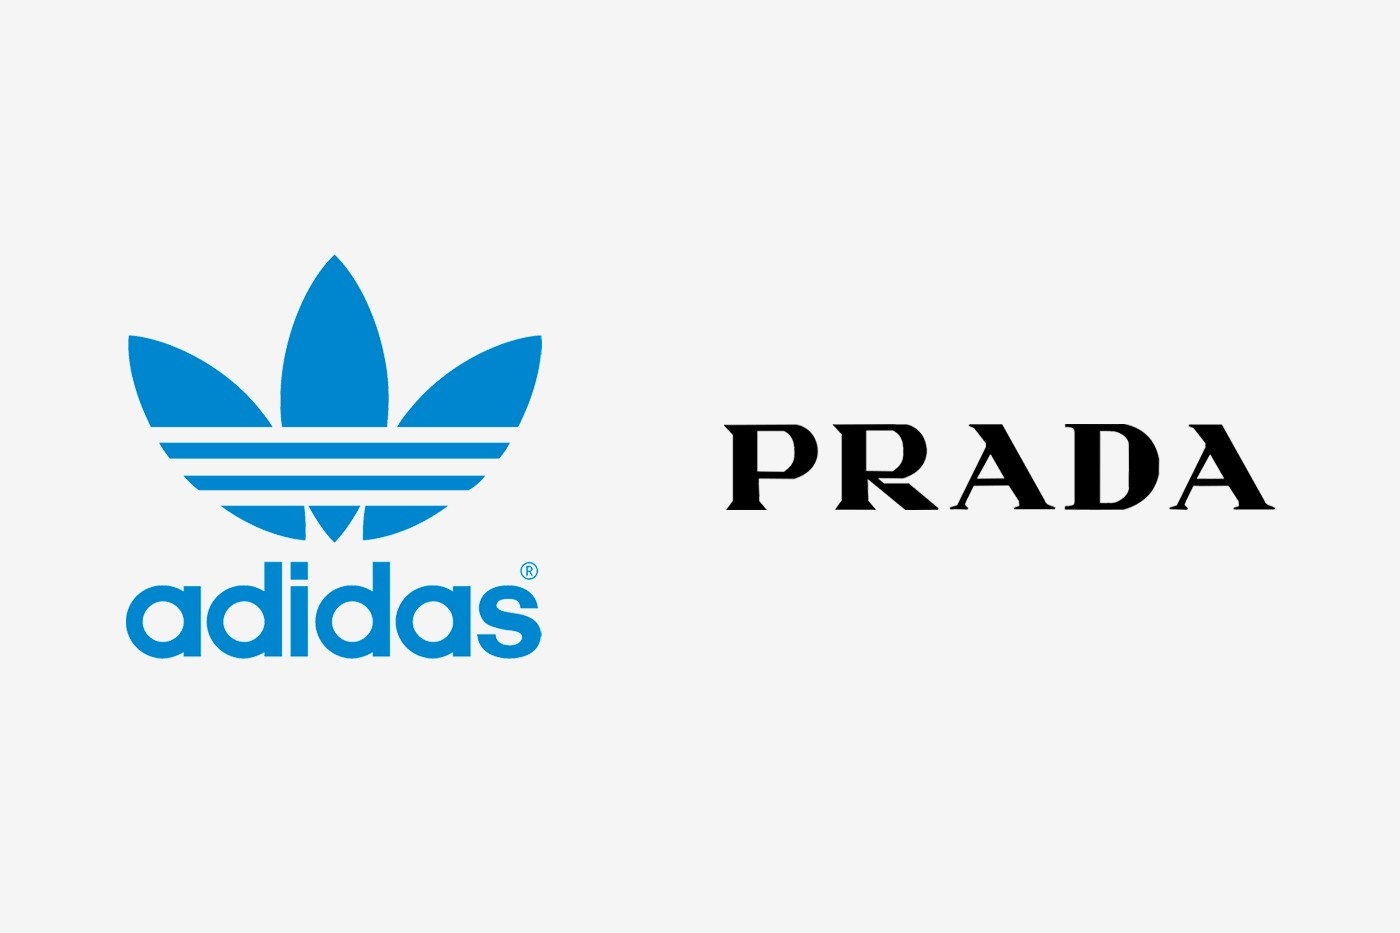 Prada adidas superstar 2020